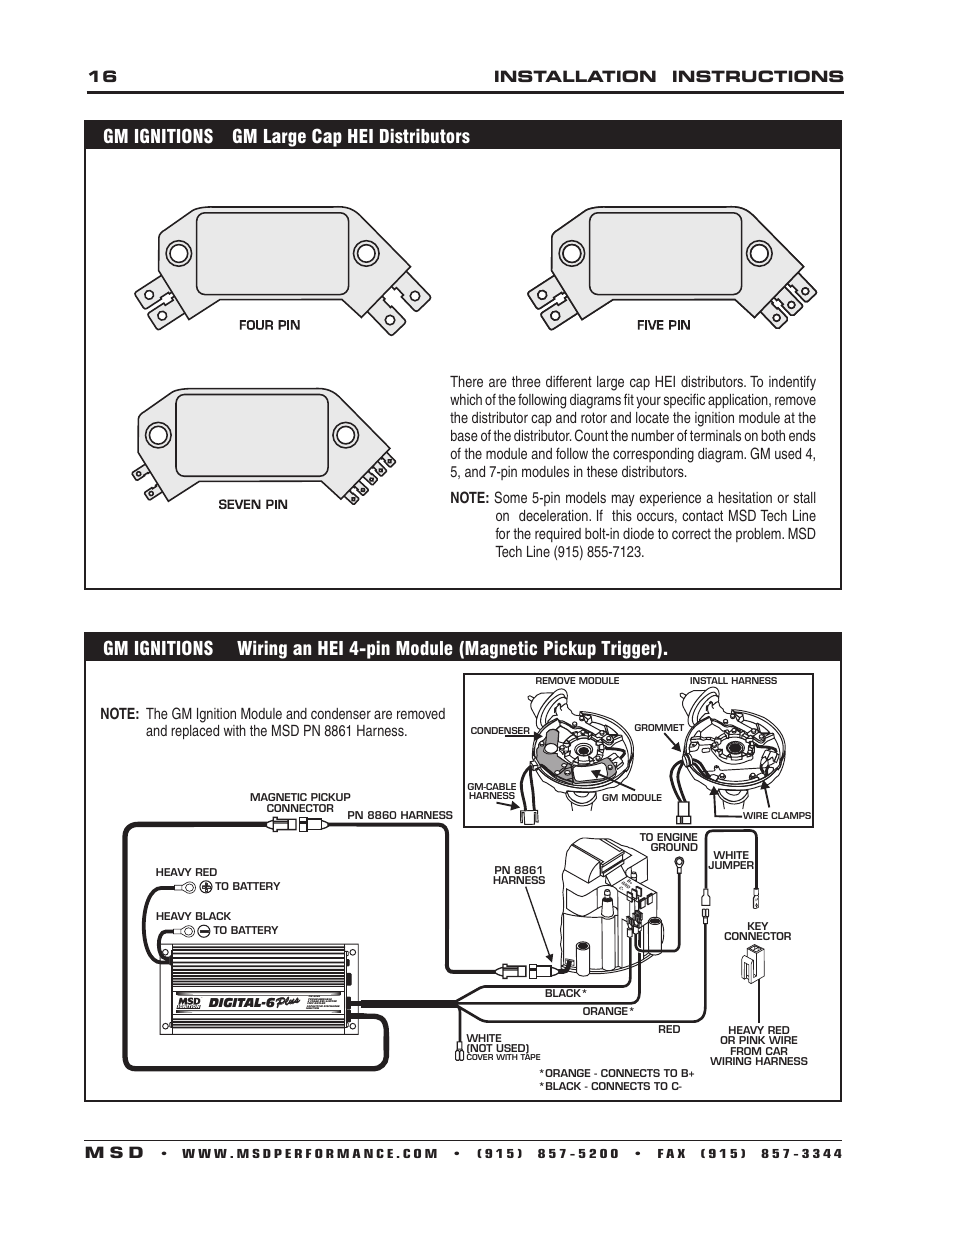 6401 msd ignition wiring diagram ford msd ignition wiring diagram solidfonts msd 6420 wiring solidfonts sample detail msd ignition wiring diagram nilza